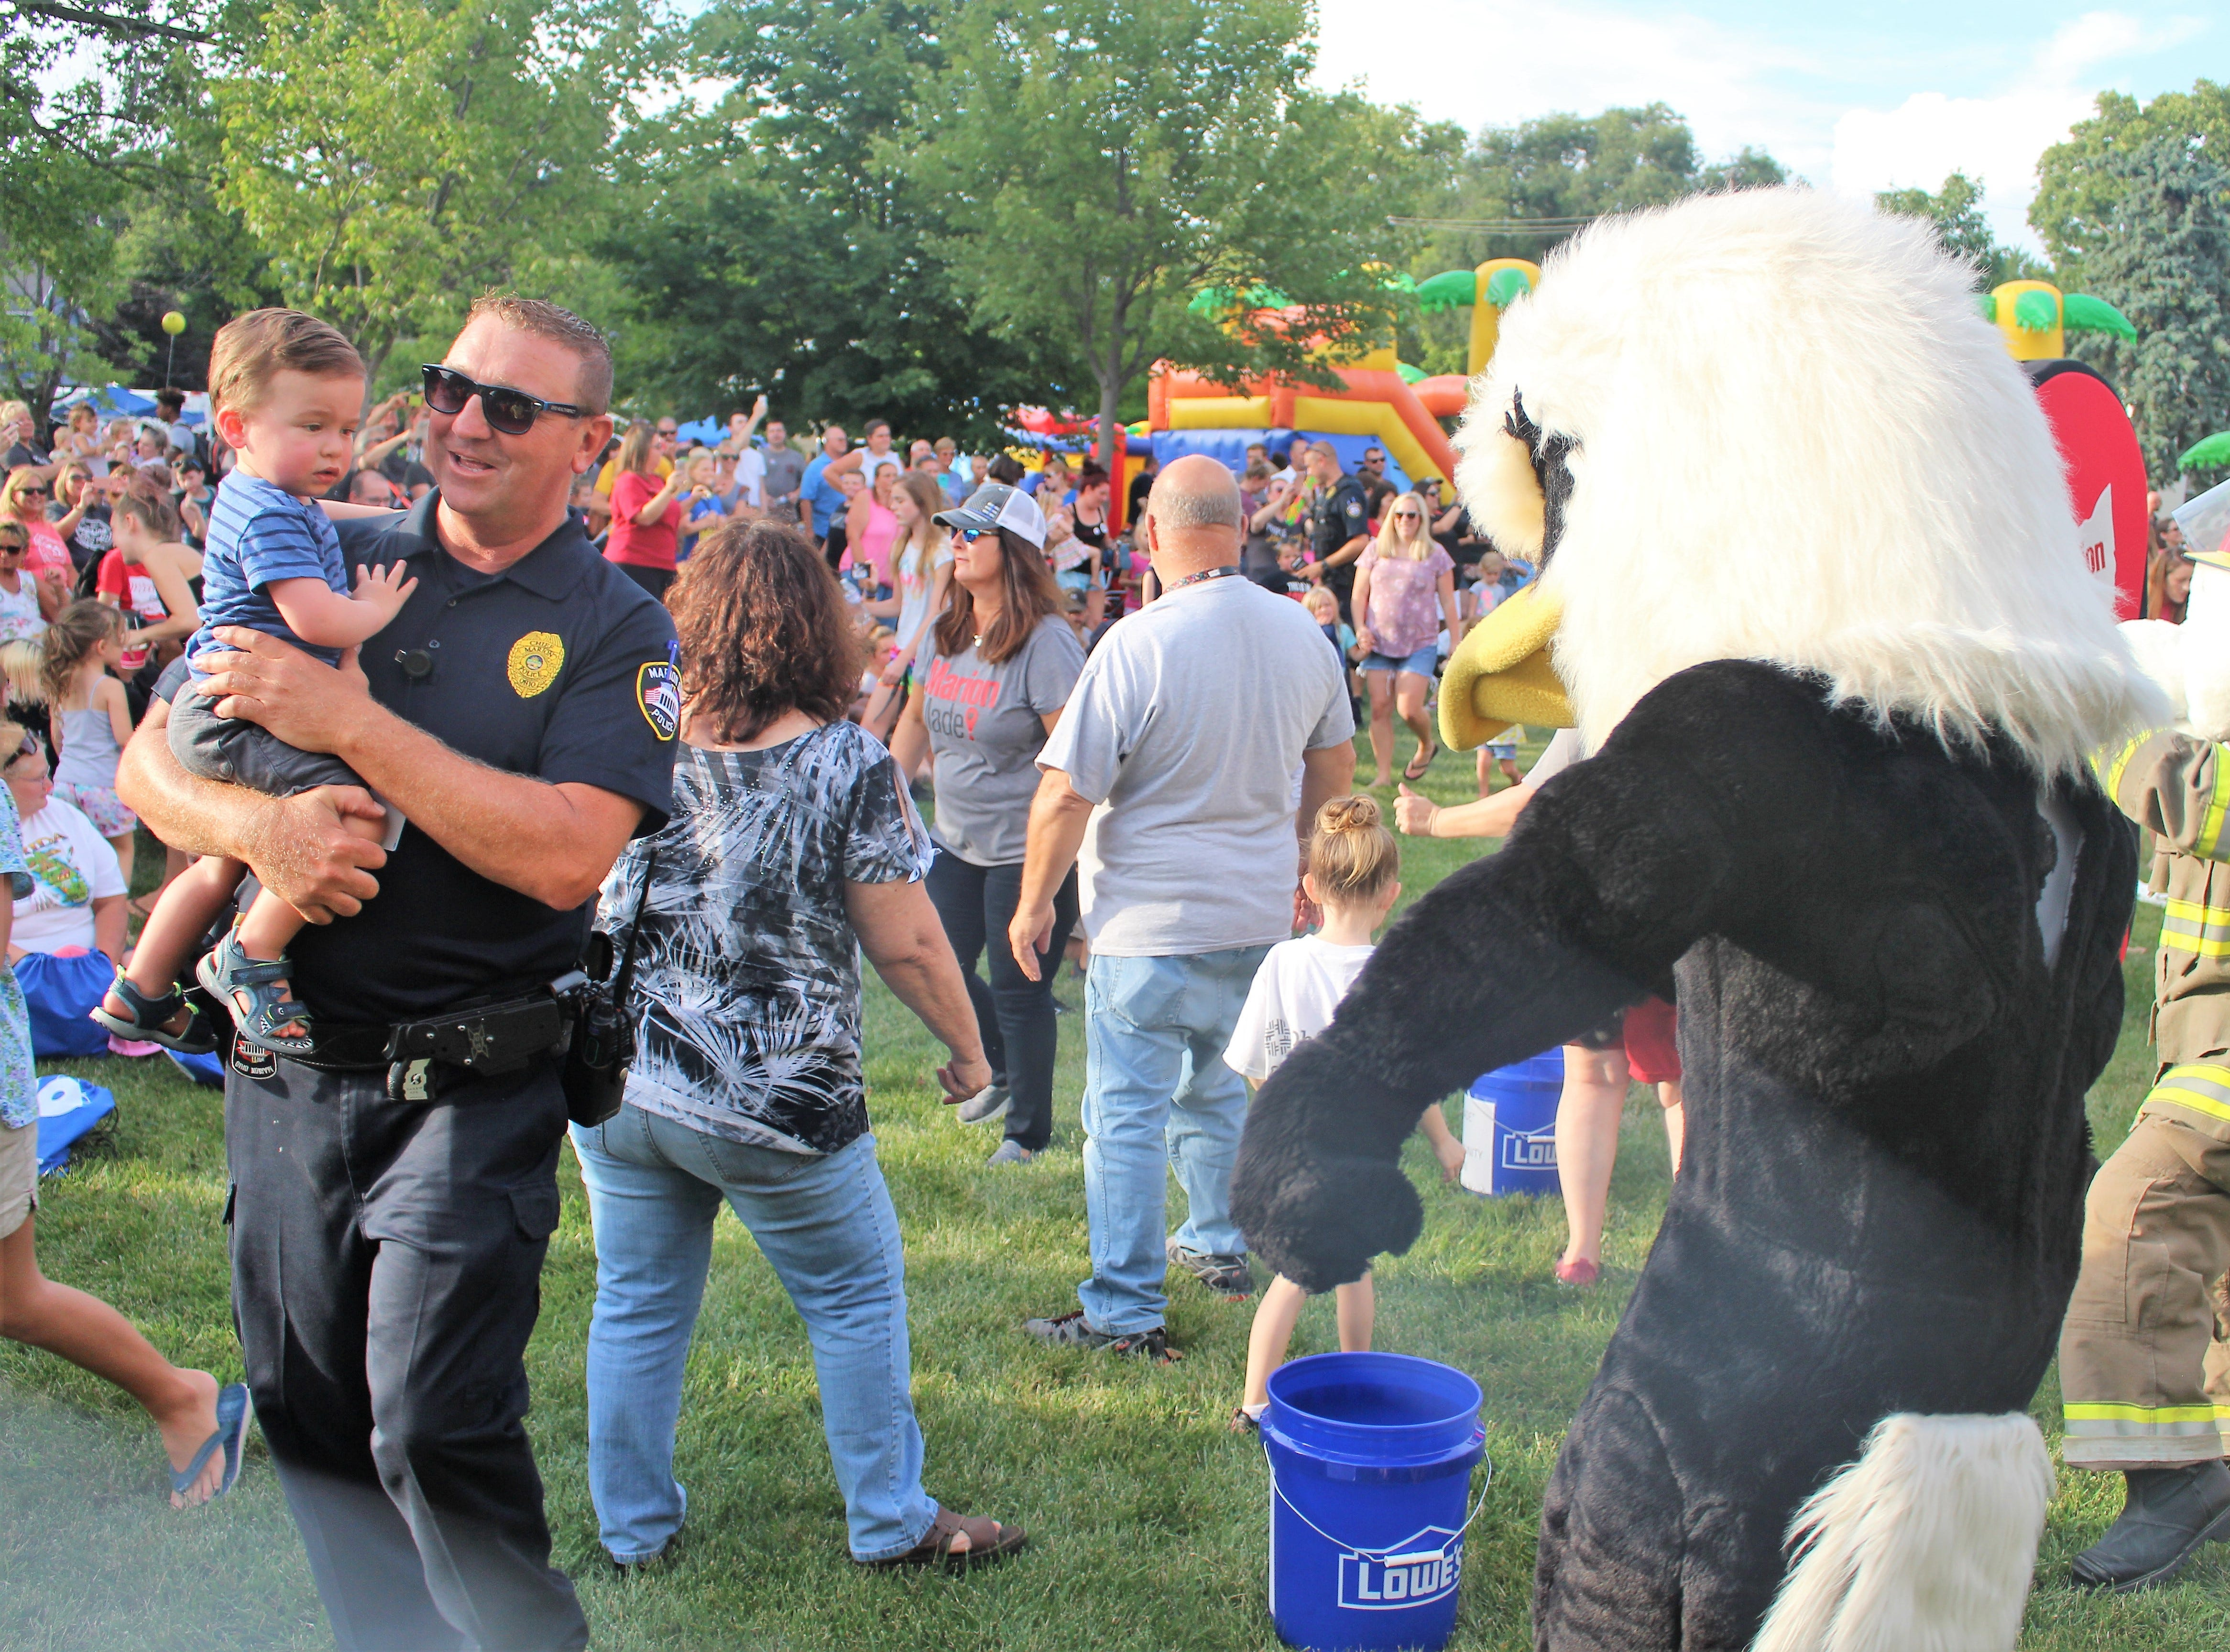 Marion Police Chief Bill Collins walks by the mascot for Marion City Schools during a National Night Out event at Grant Middle School Tuesday evening. The event aims to build up relationships between local police departments across the country and the communities they serve.